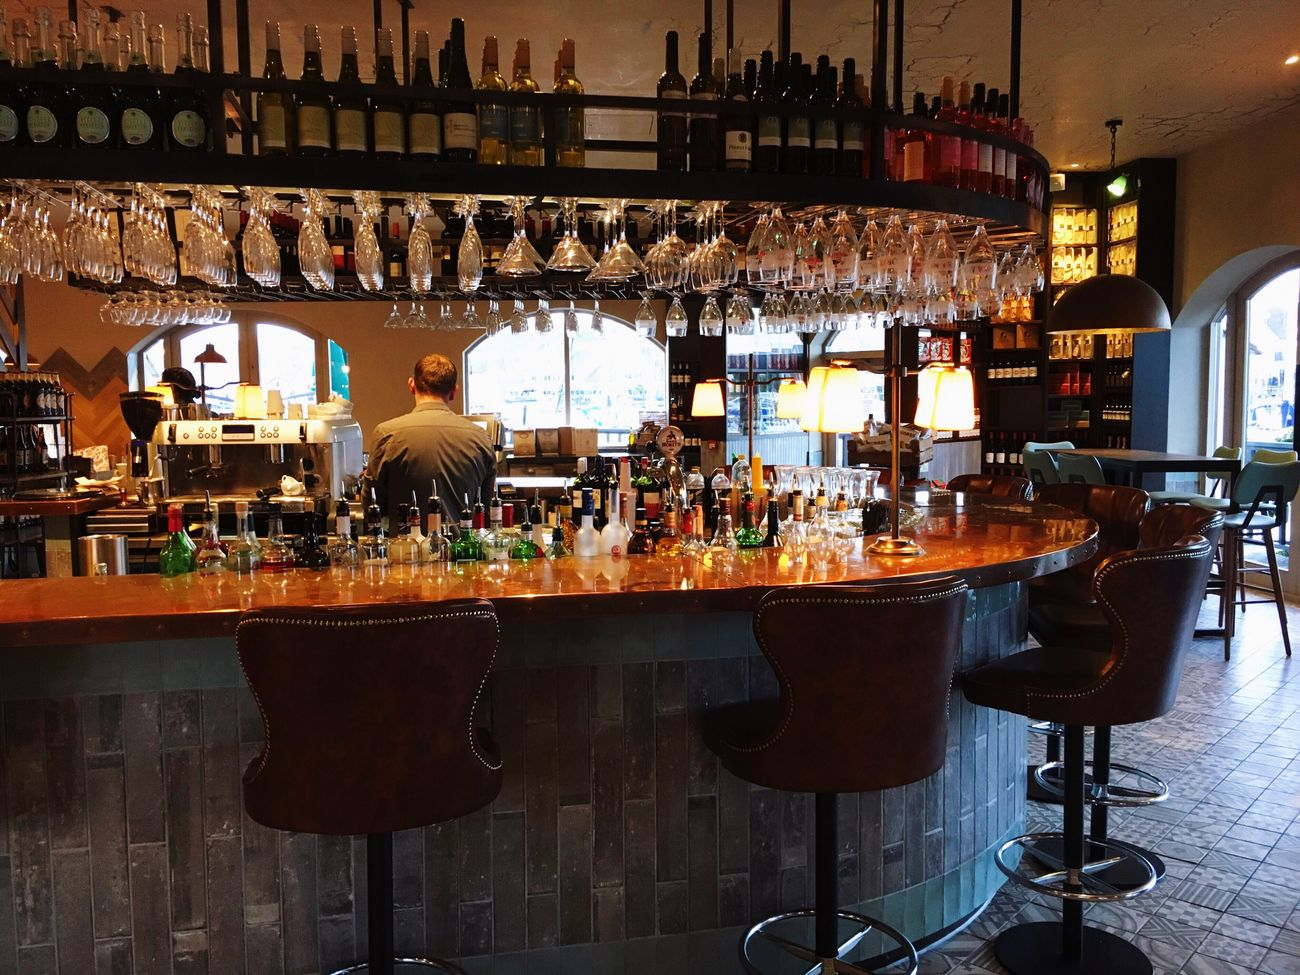 Bar Bar - Drink Establishment Indoors  Bar Counter Alcohol Drink Happy Hour Glasses Bottle Indoor Drinking Drinking Glass Drinks Illuminated Cocktails Alcoholic Drink Empty Chair Stool Seats Glowing Restaurant Restaurant Decor Eating Out Barman